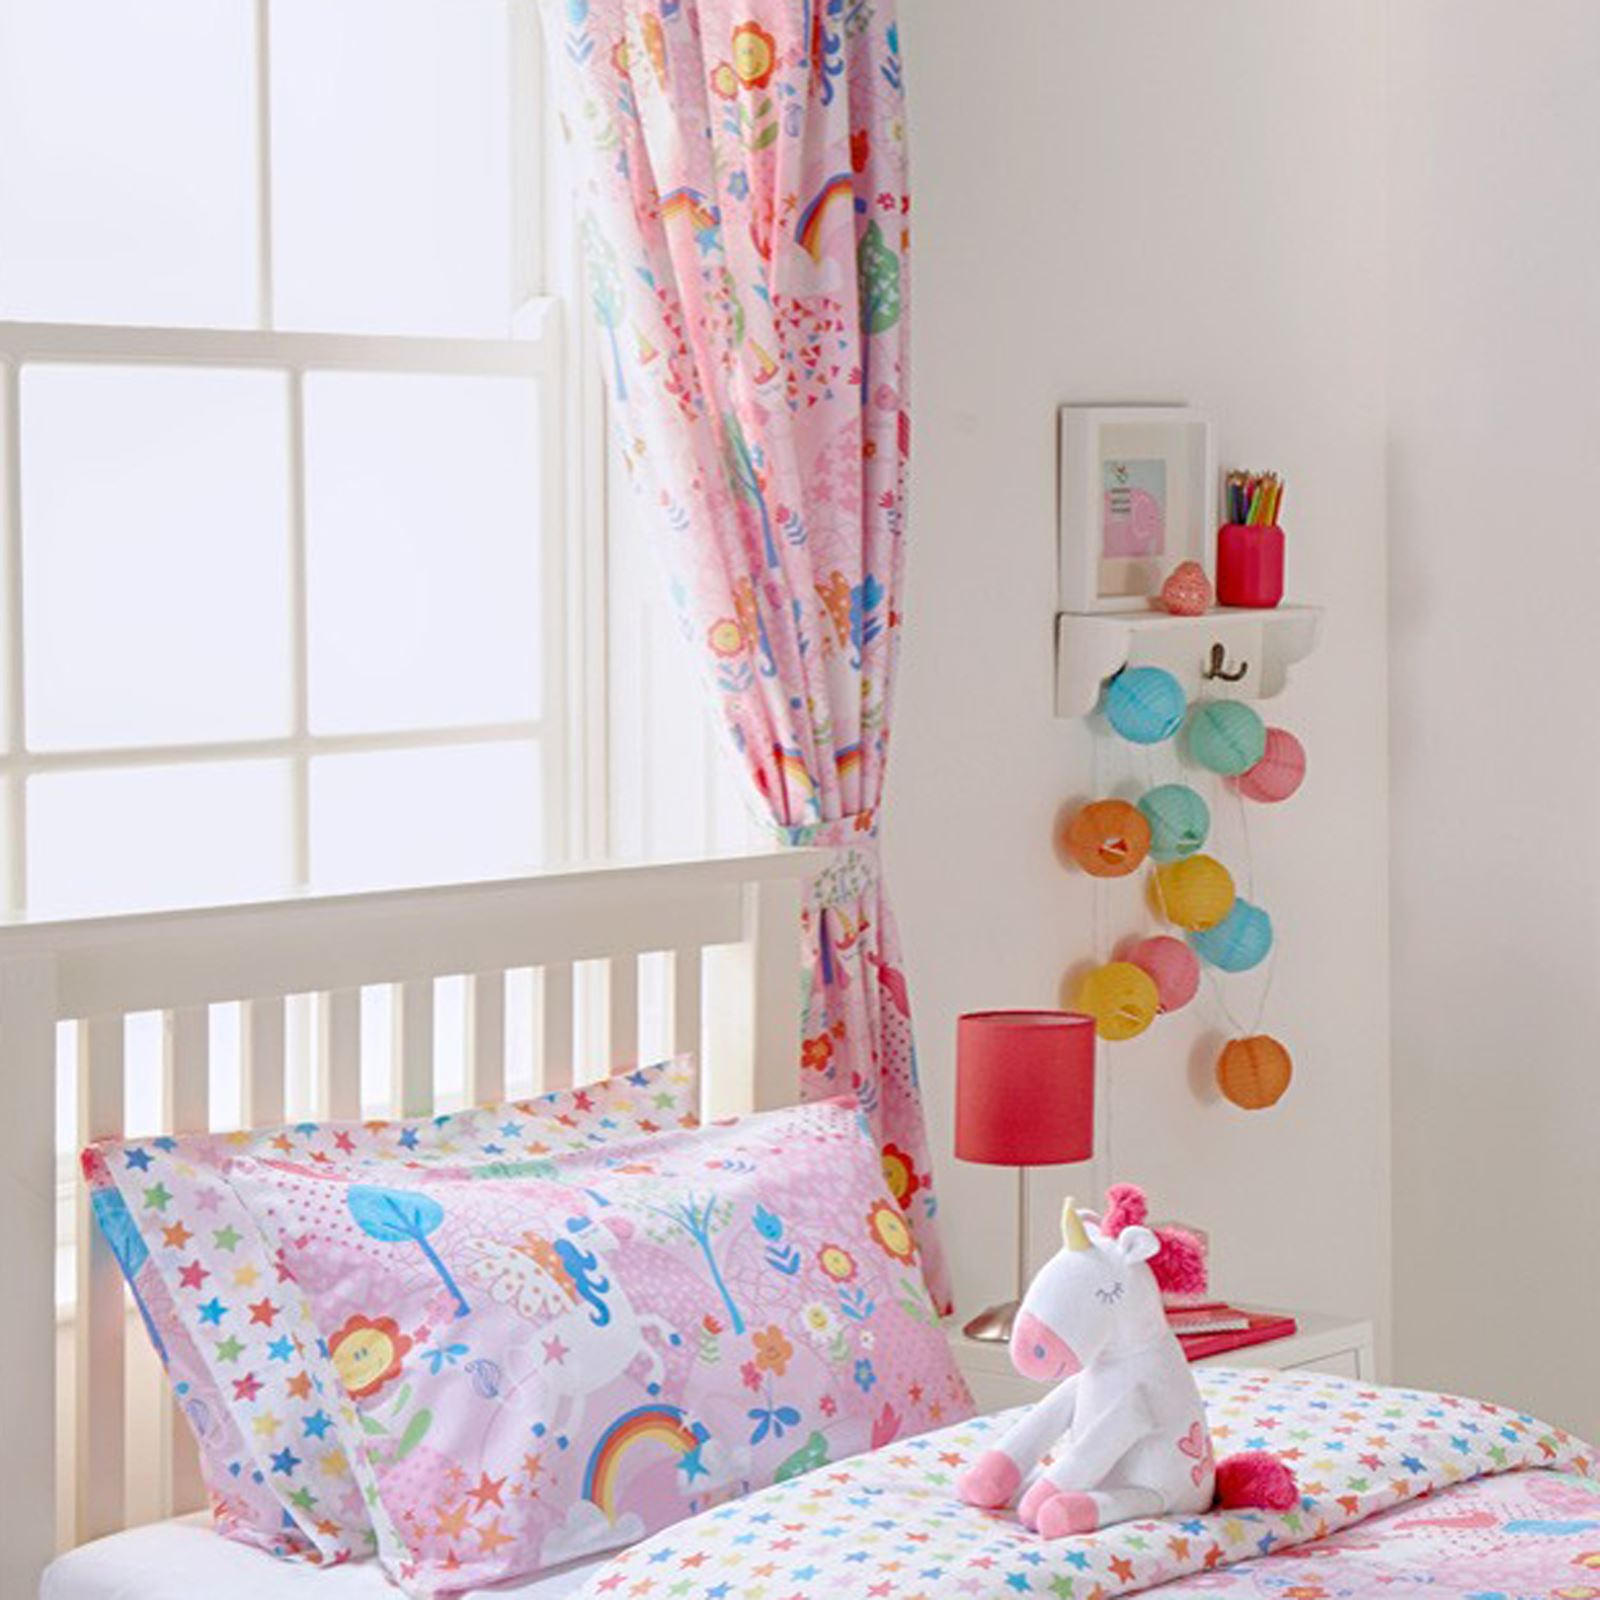 of sensational black pink and for inspirations curtain full panelsblack ande curtainslooking size curtainslight white girlspink photos tag curtains looking curtainspink girlshoundstooth